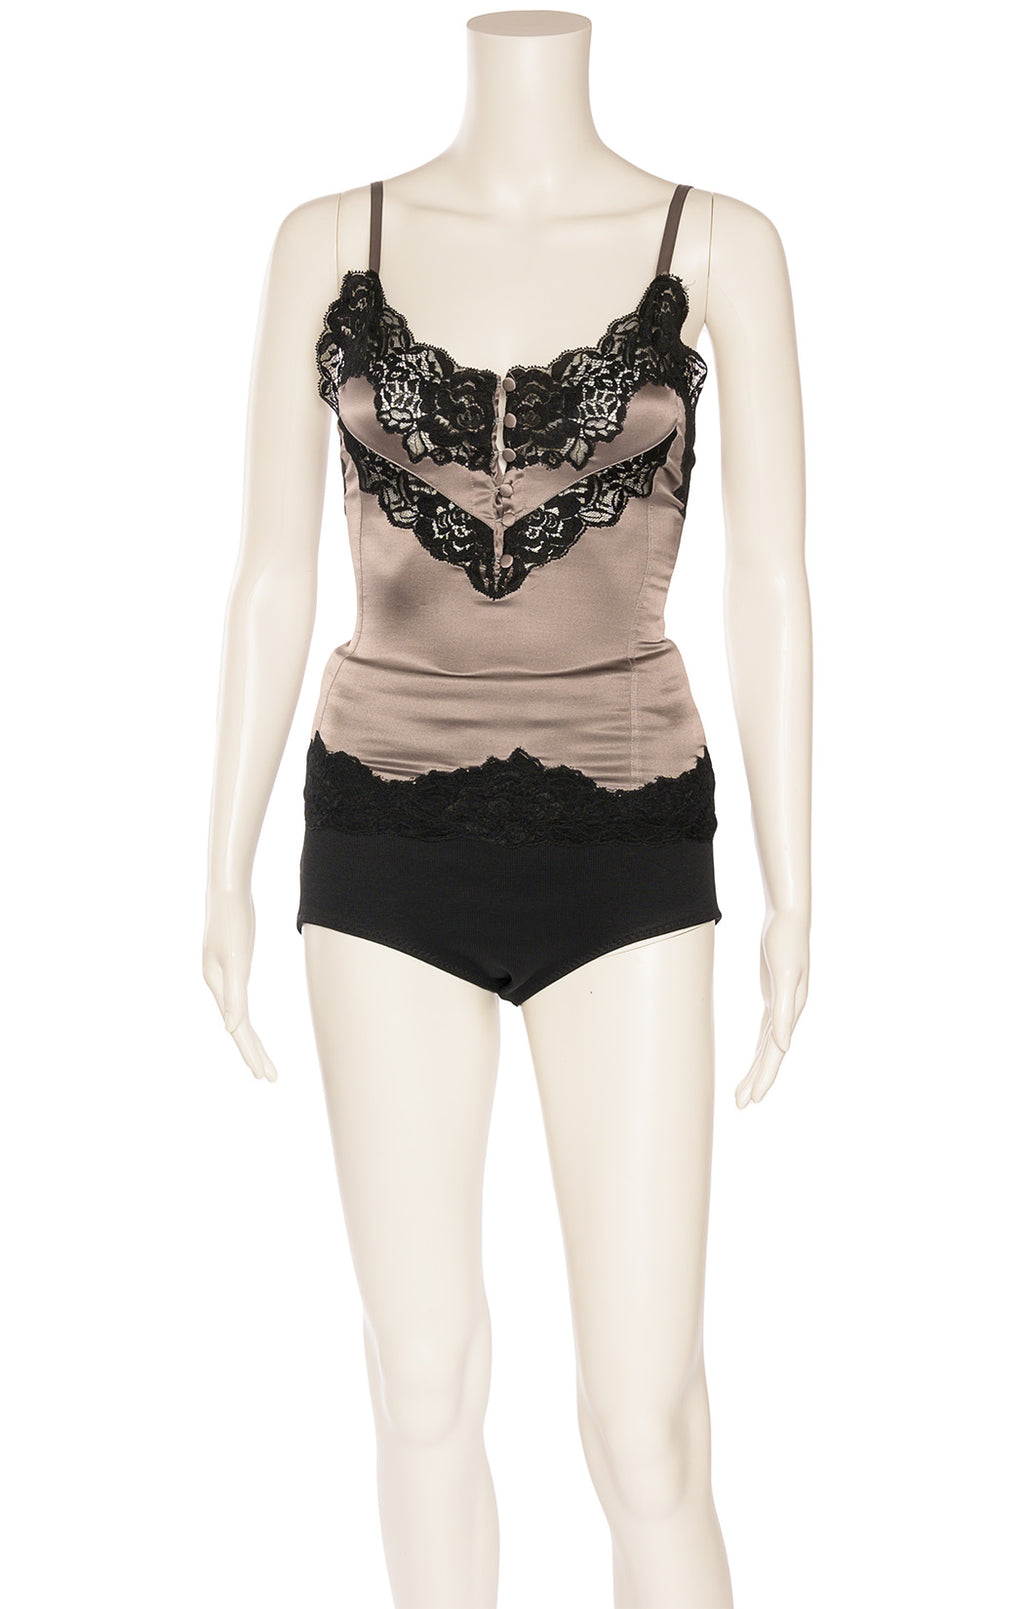 Gray with black lace and front button camisole with adjustable straps